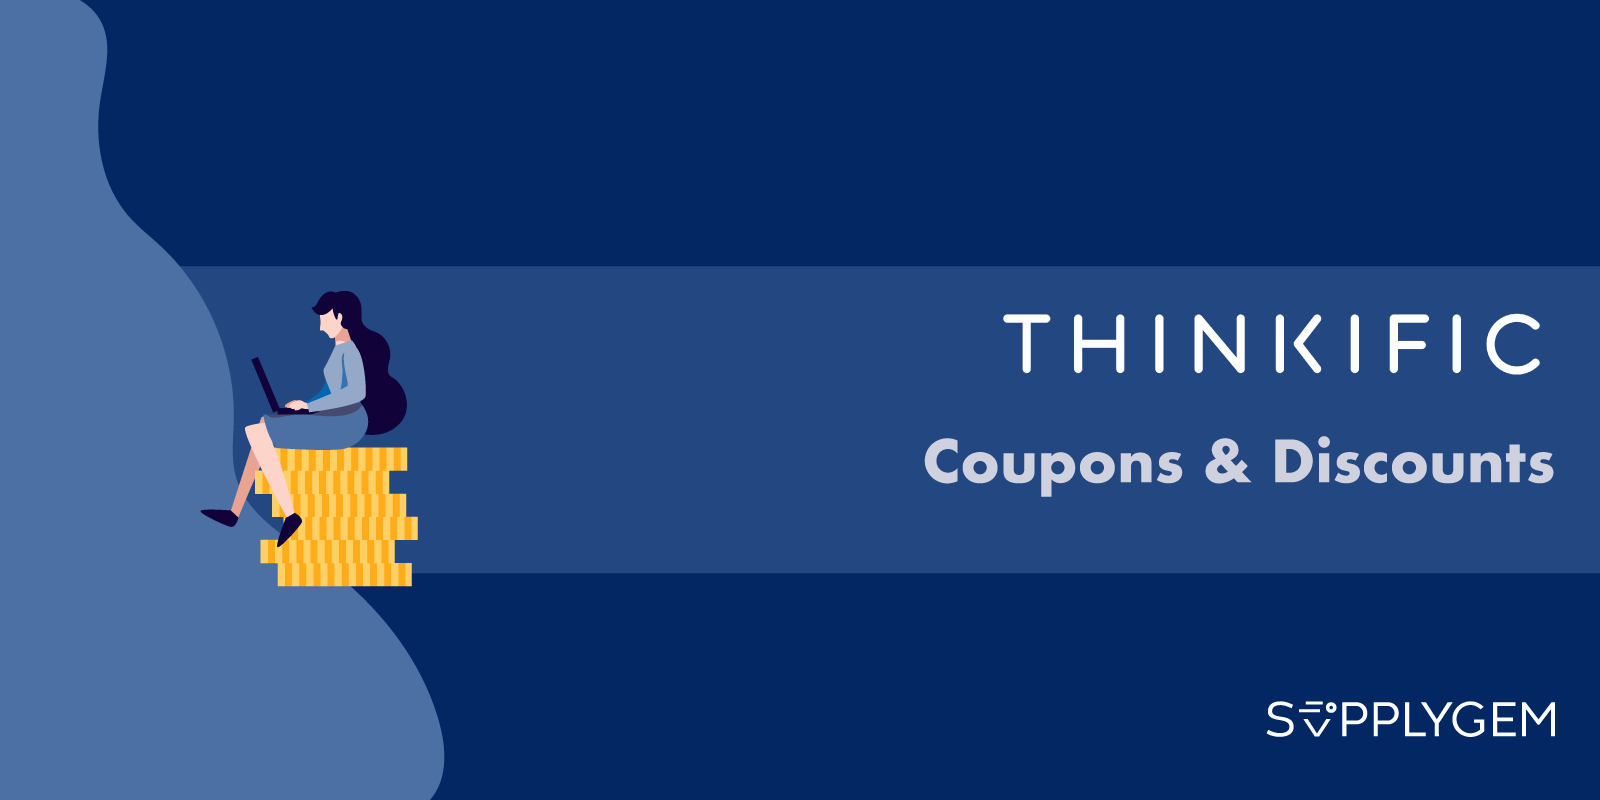 Thinkific Coupons